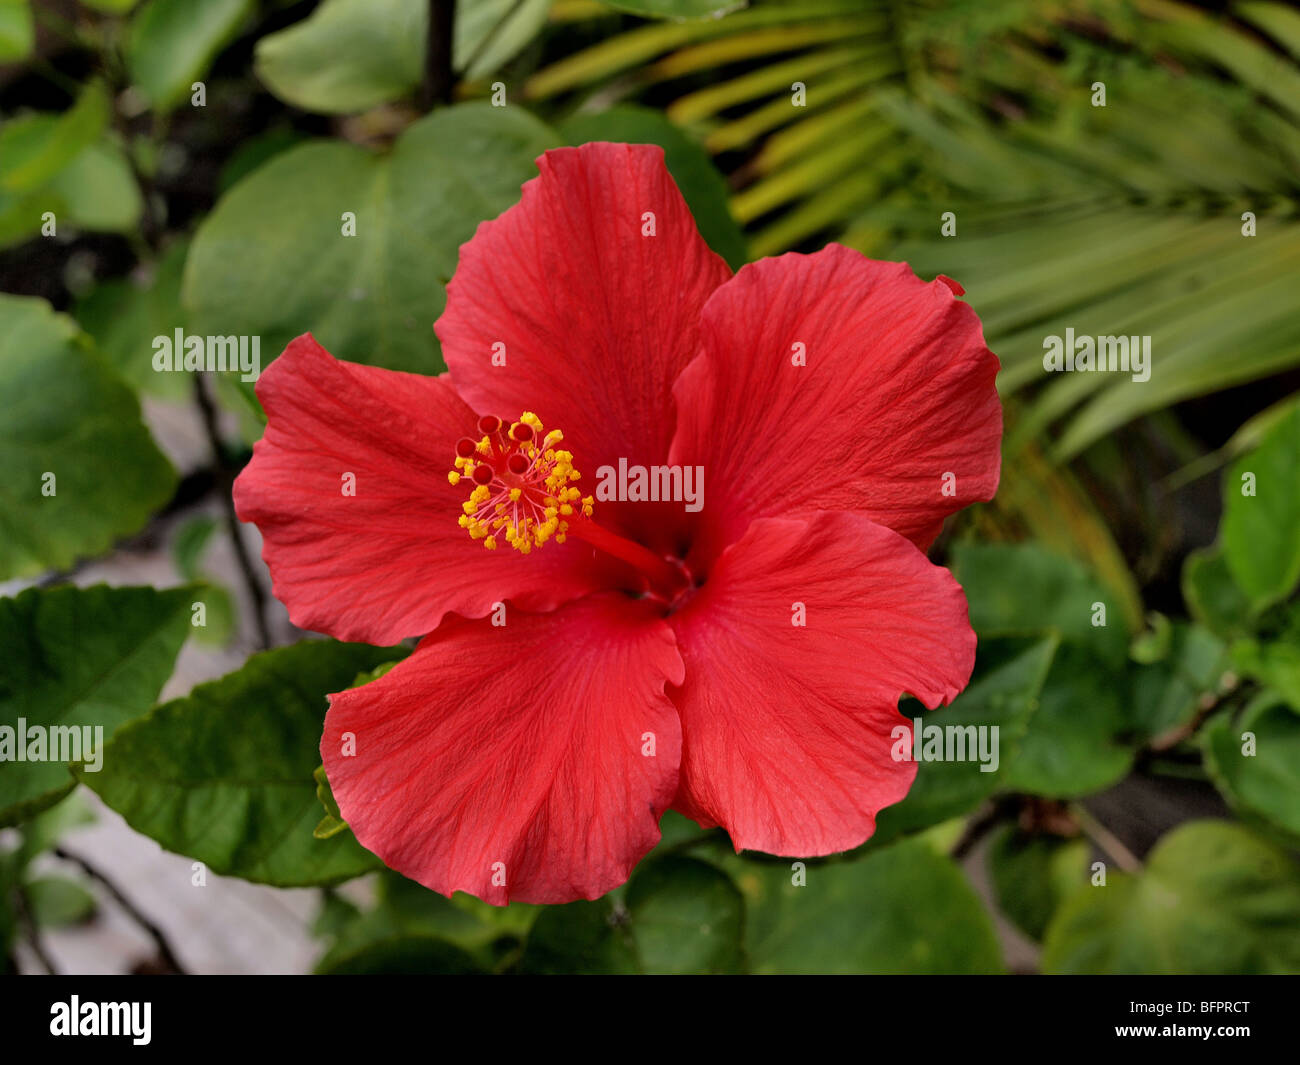 Red flower hibiscus in green stock photos red flower hibiscus in red flower with yellow stamen oriental hibiscus with green foliage in background stock image mightylinksfo